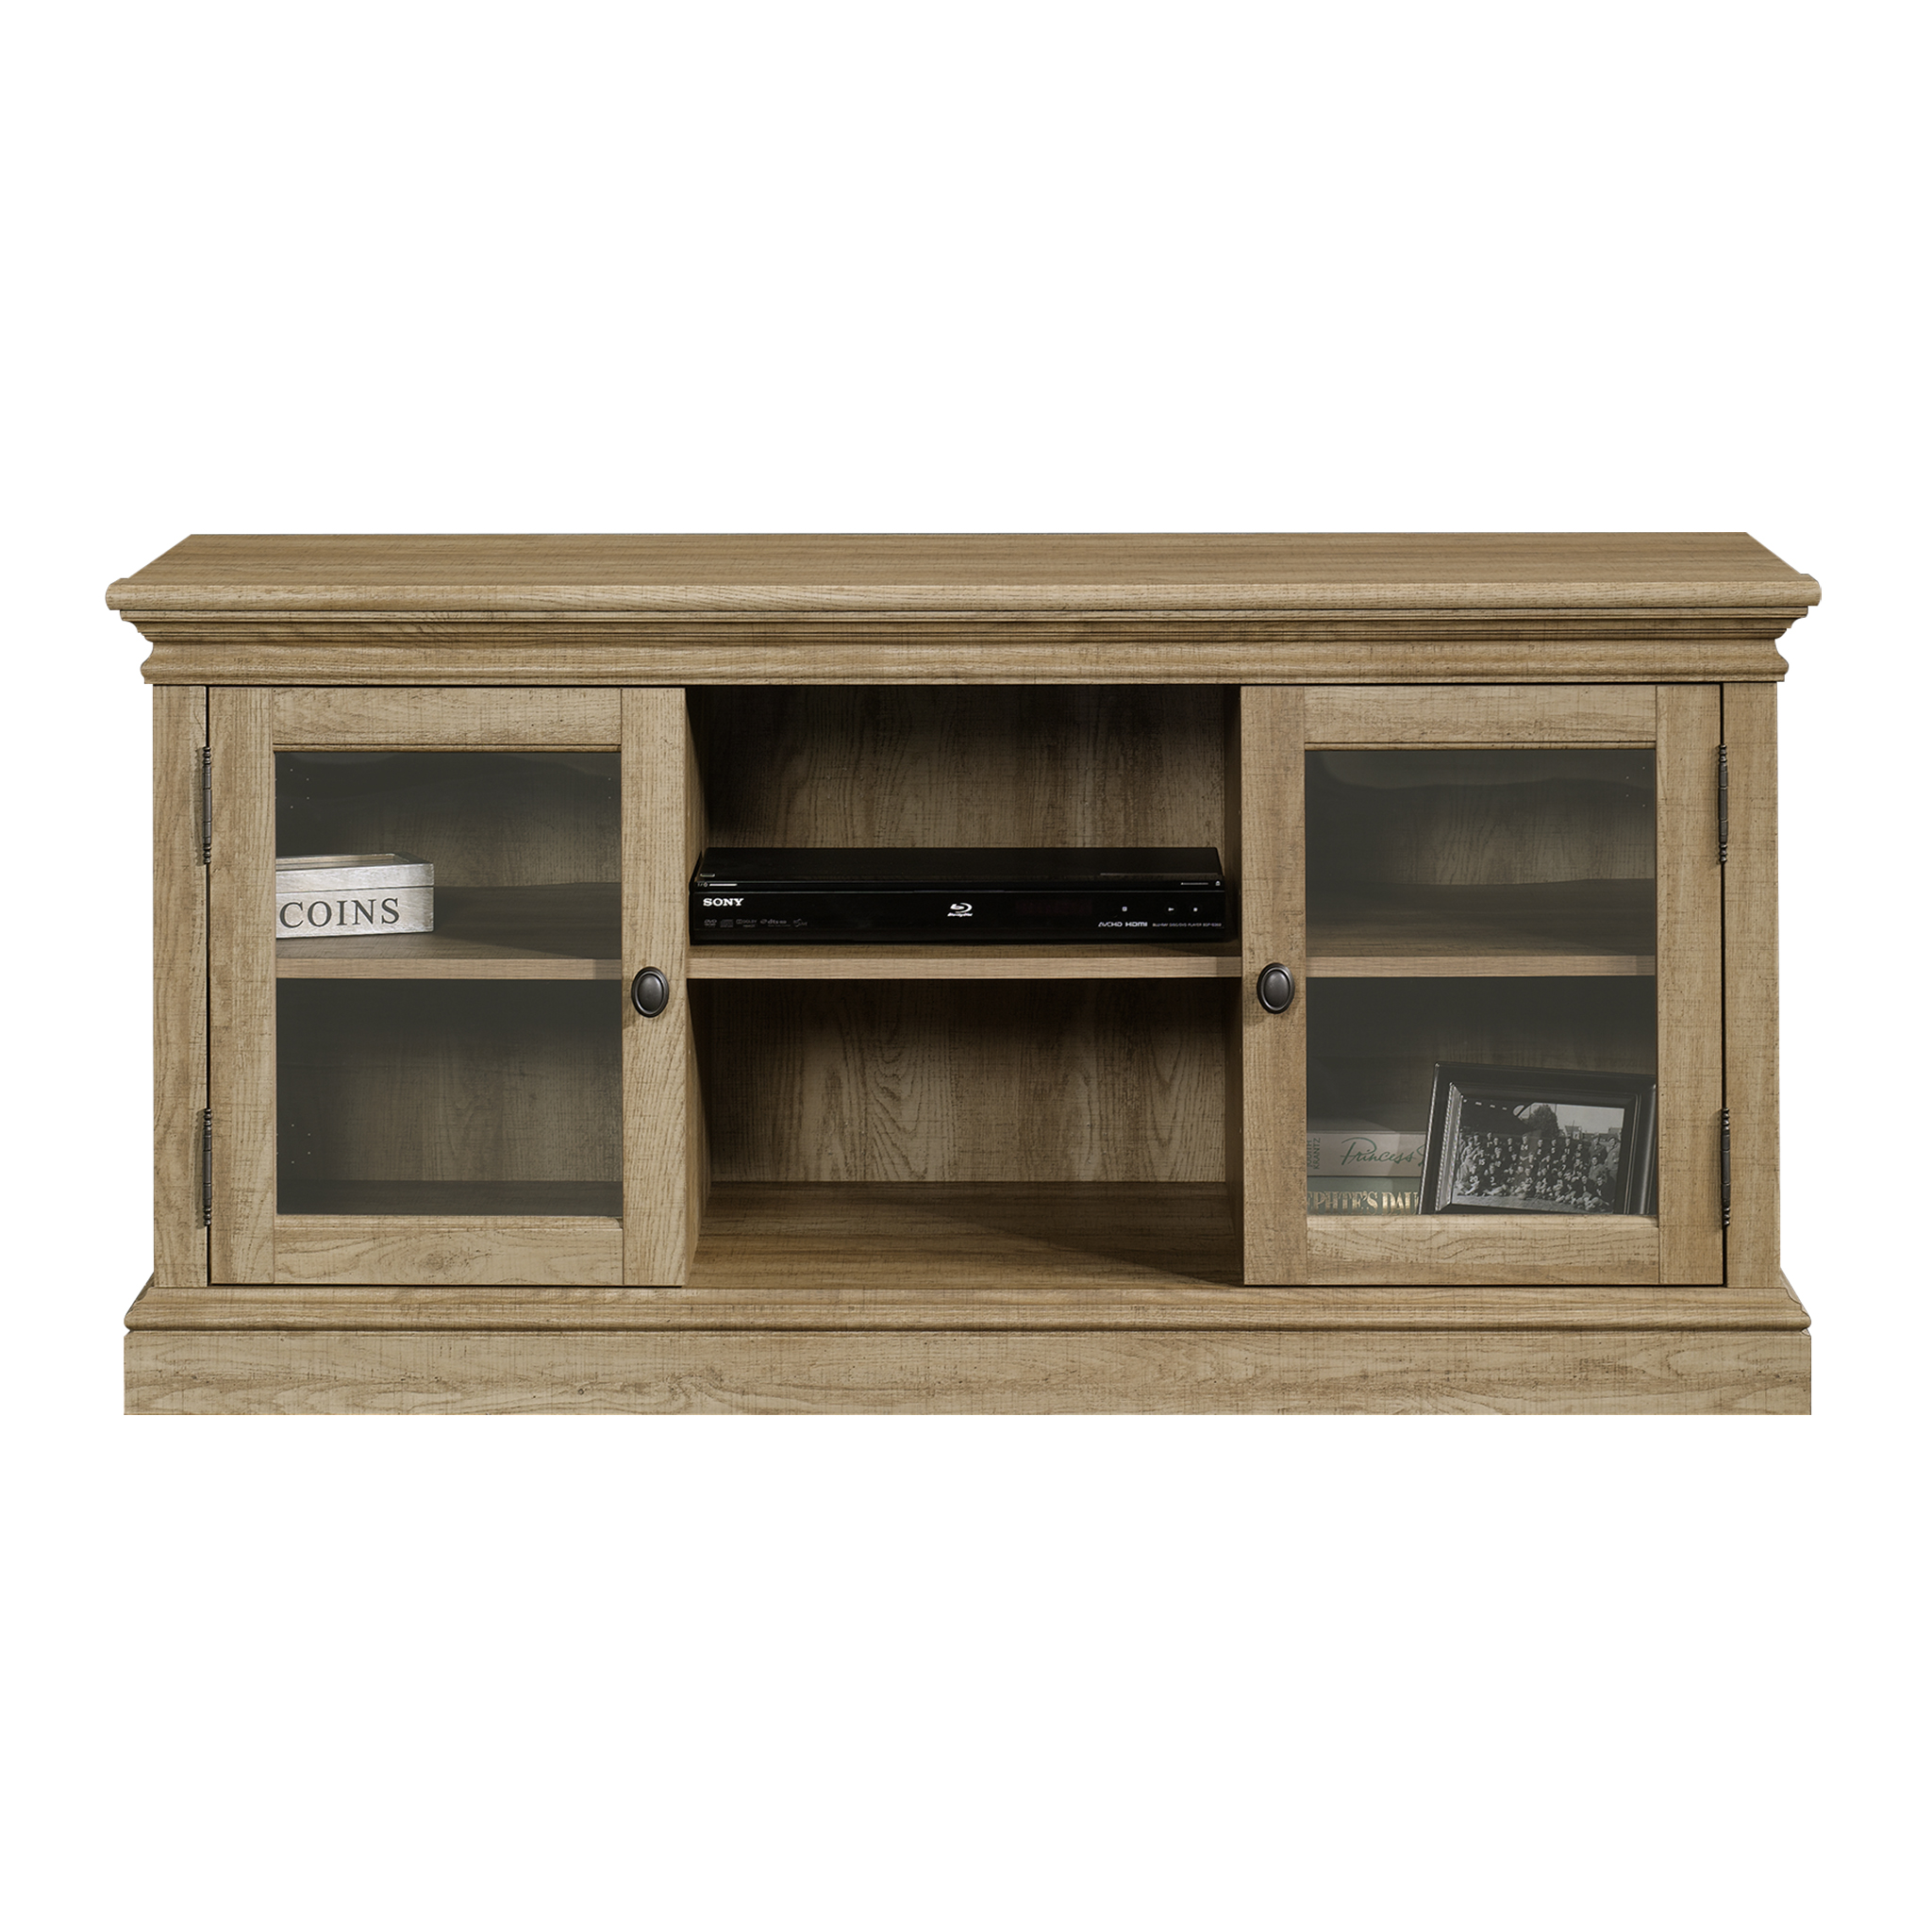 scribed oak effect home sauder barrister lane entertainment credenza for tvs up to 60 home and office collection